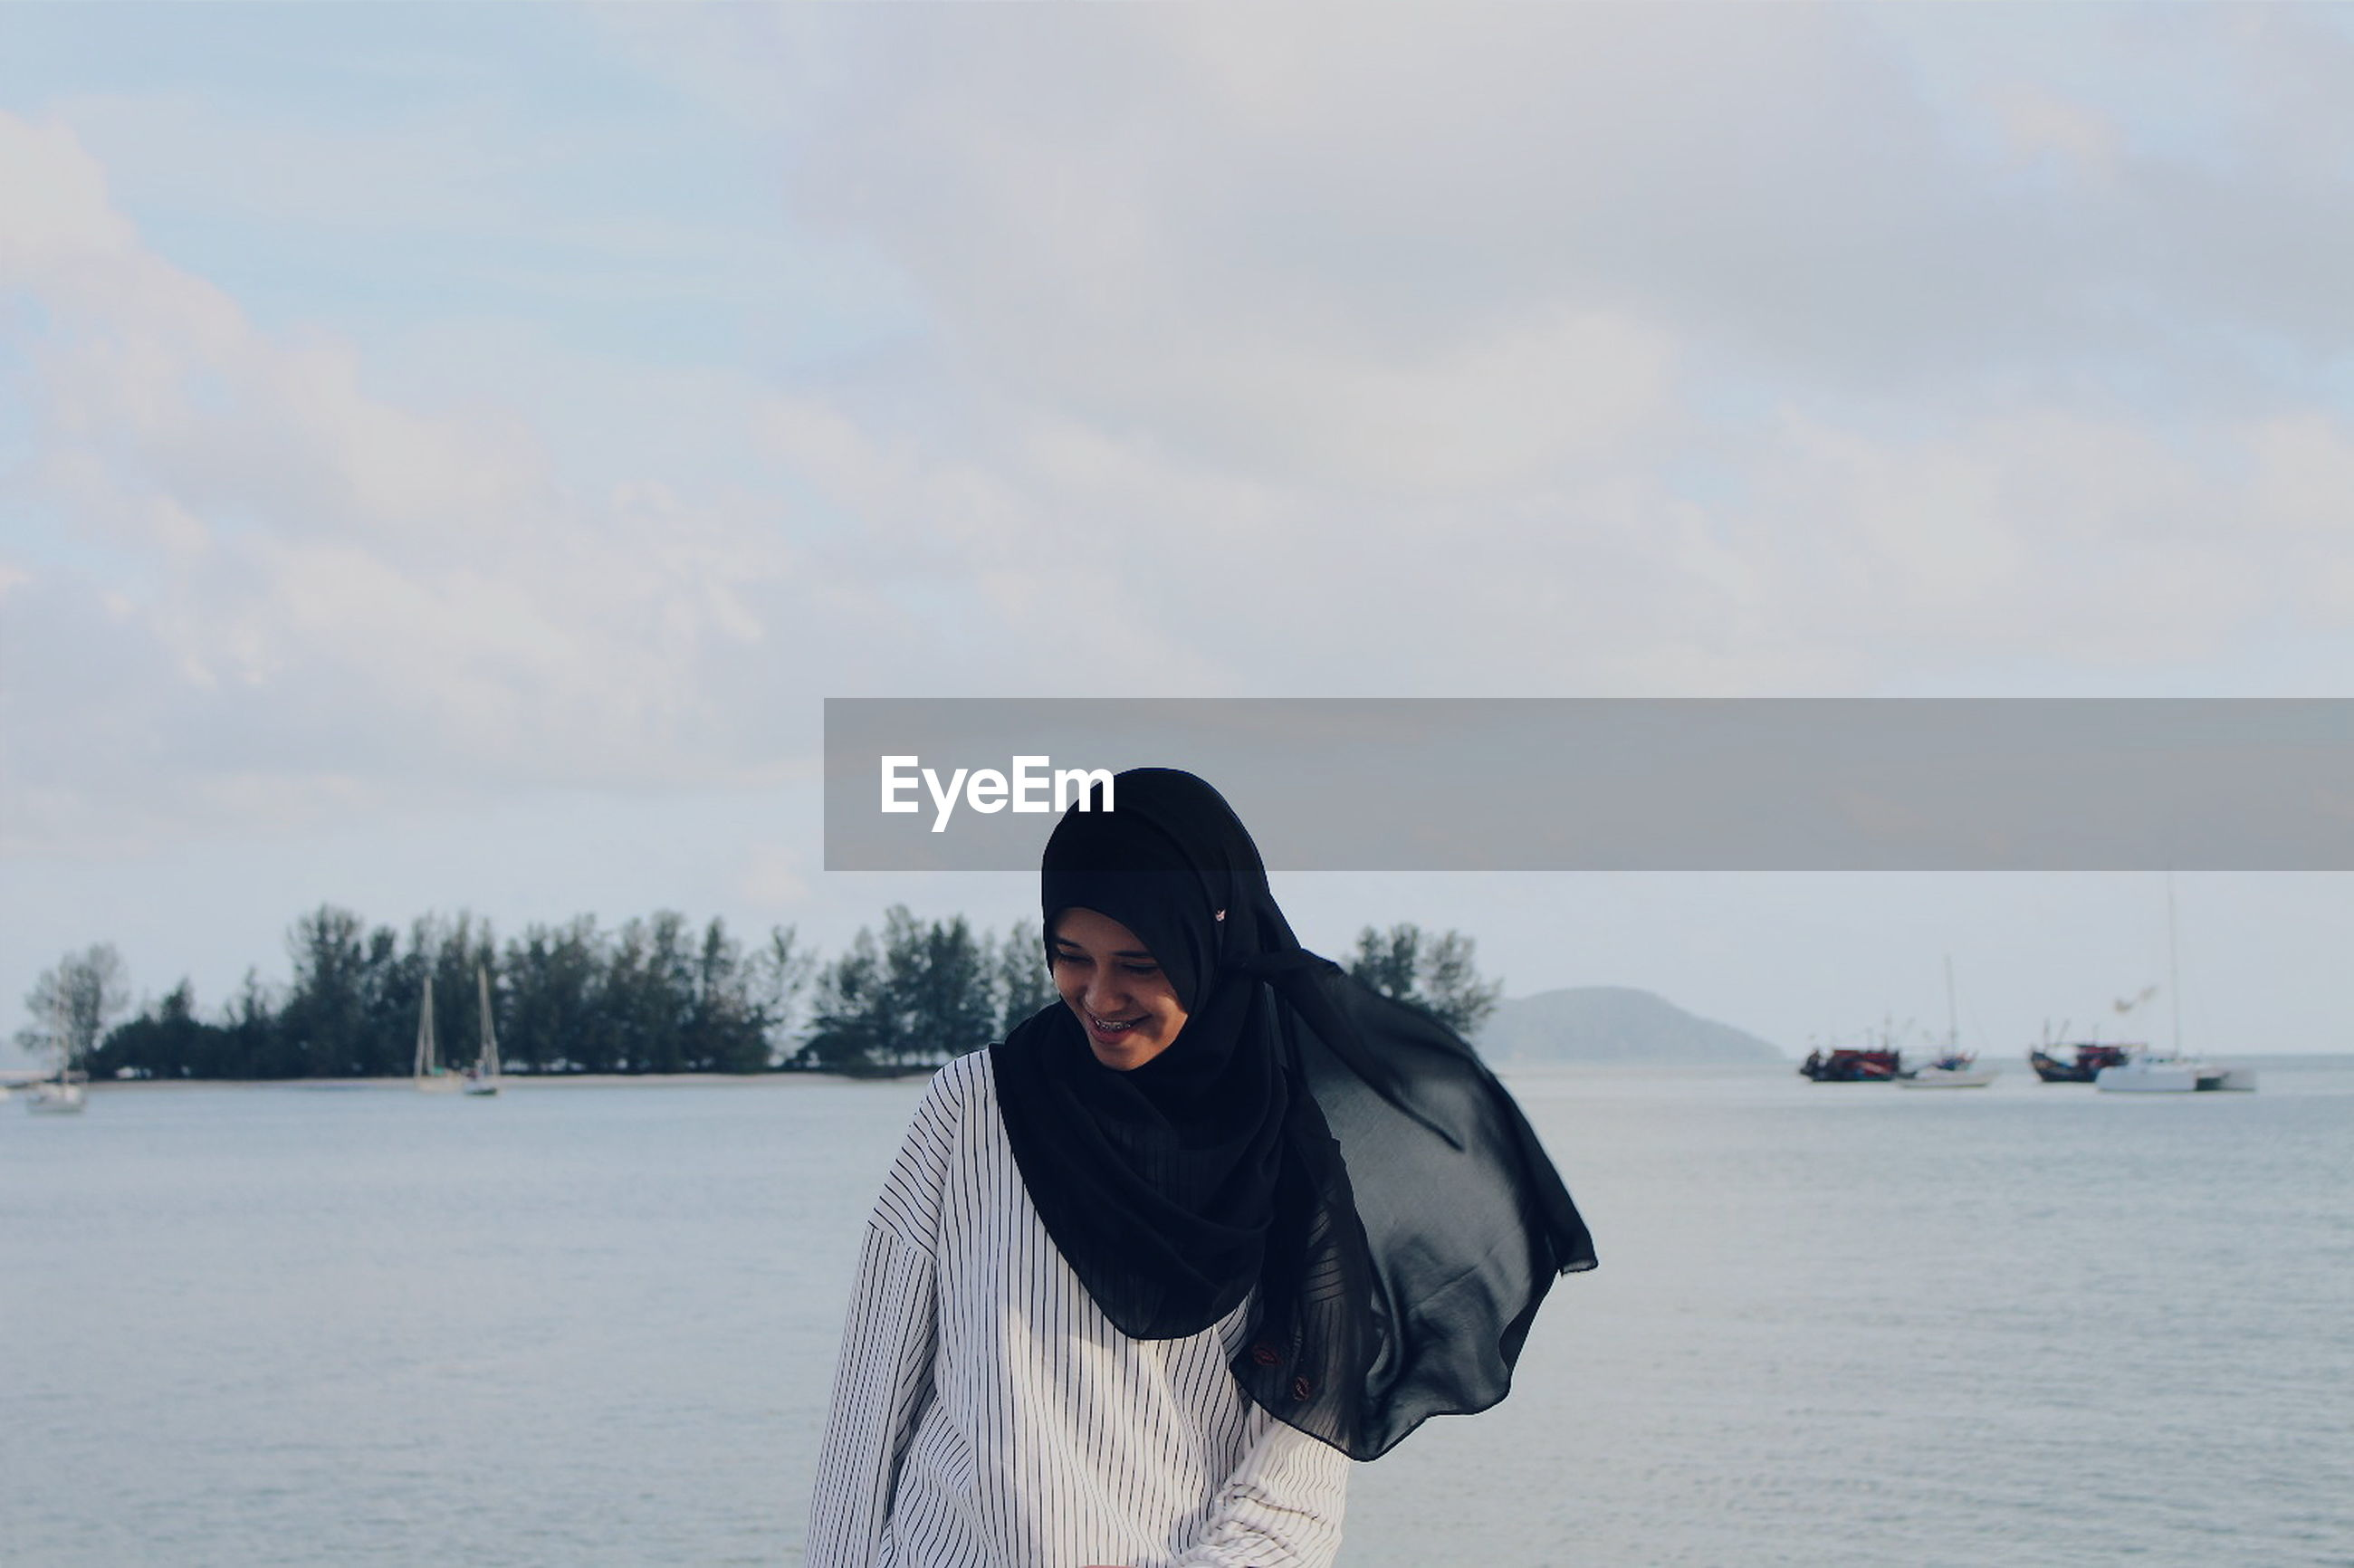 Young woman in hijab standing at beach against cloudy sky